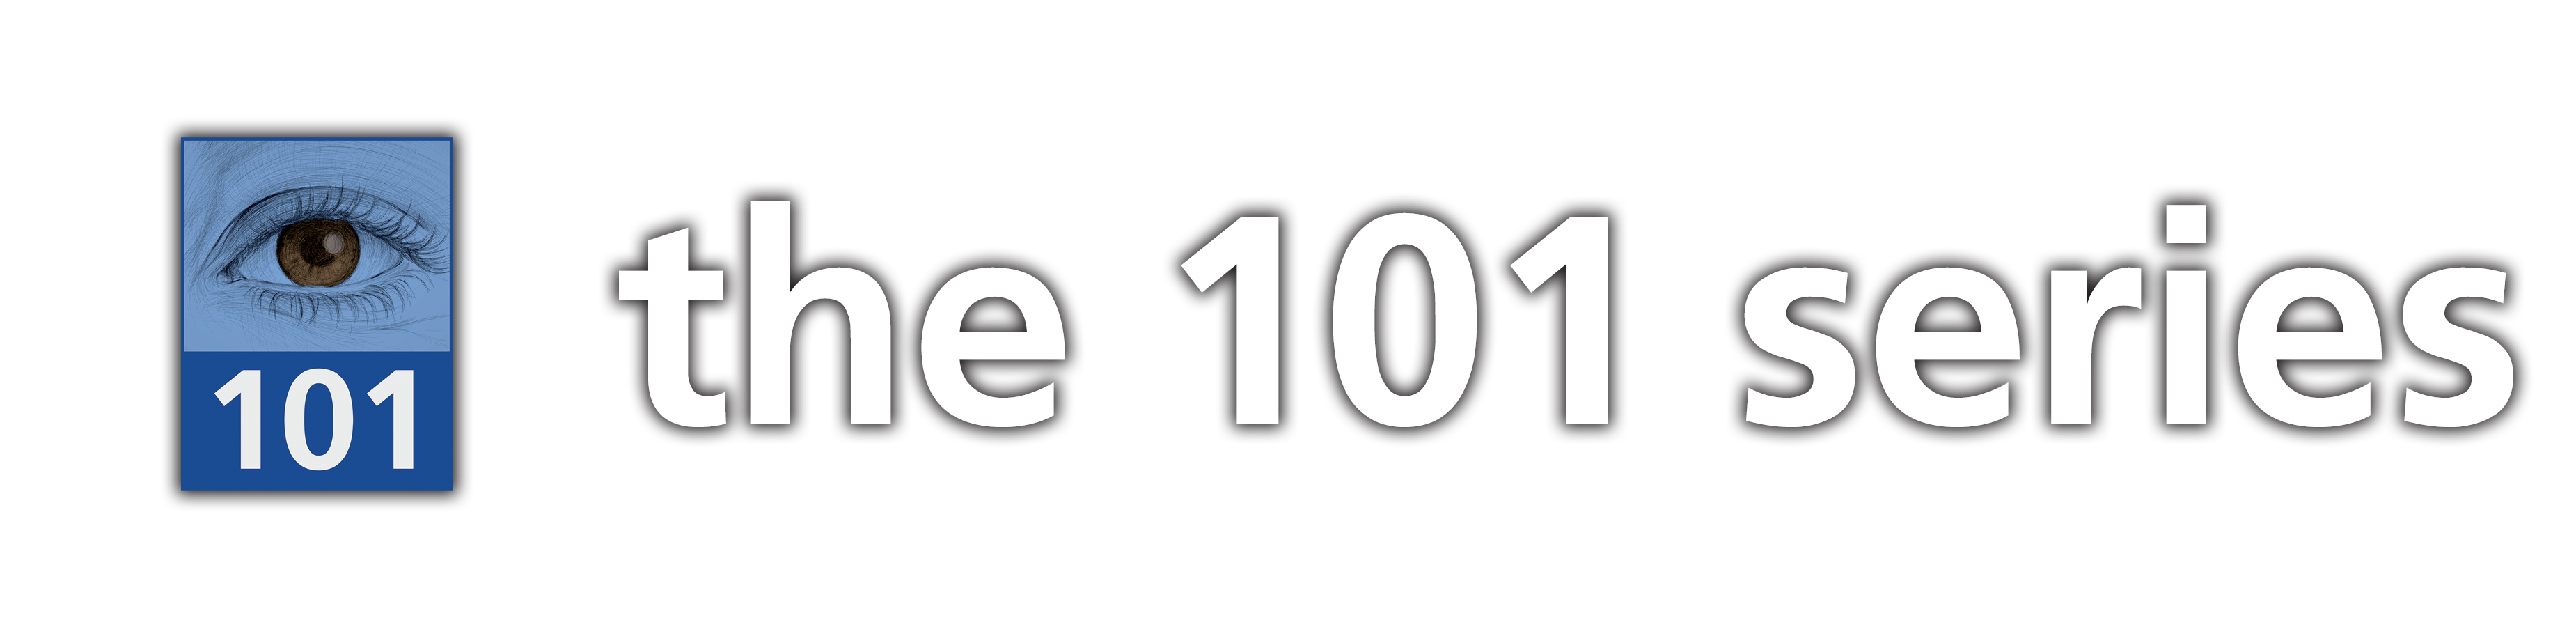 the 101 series Online